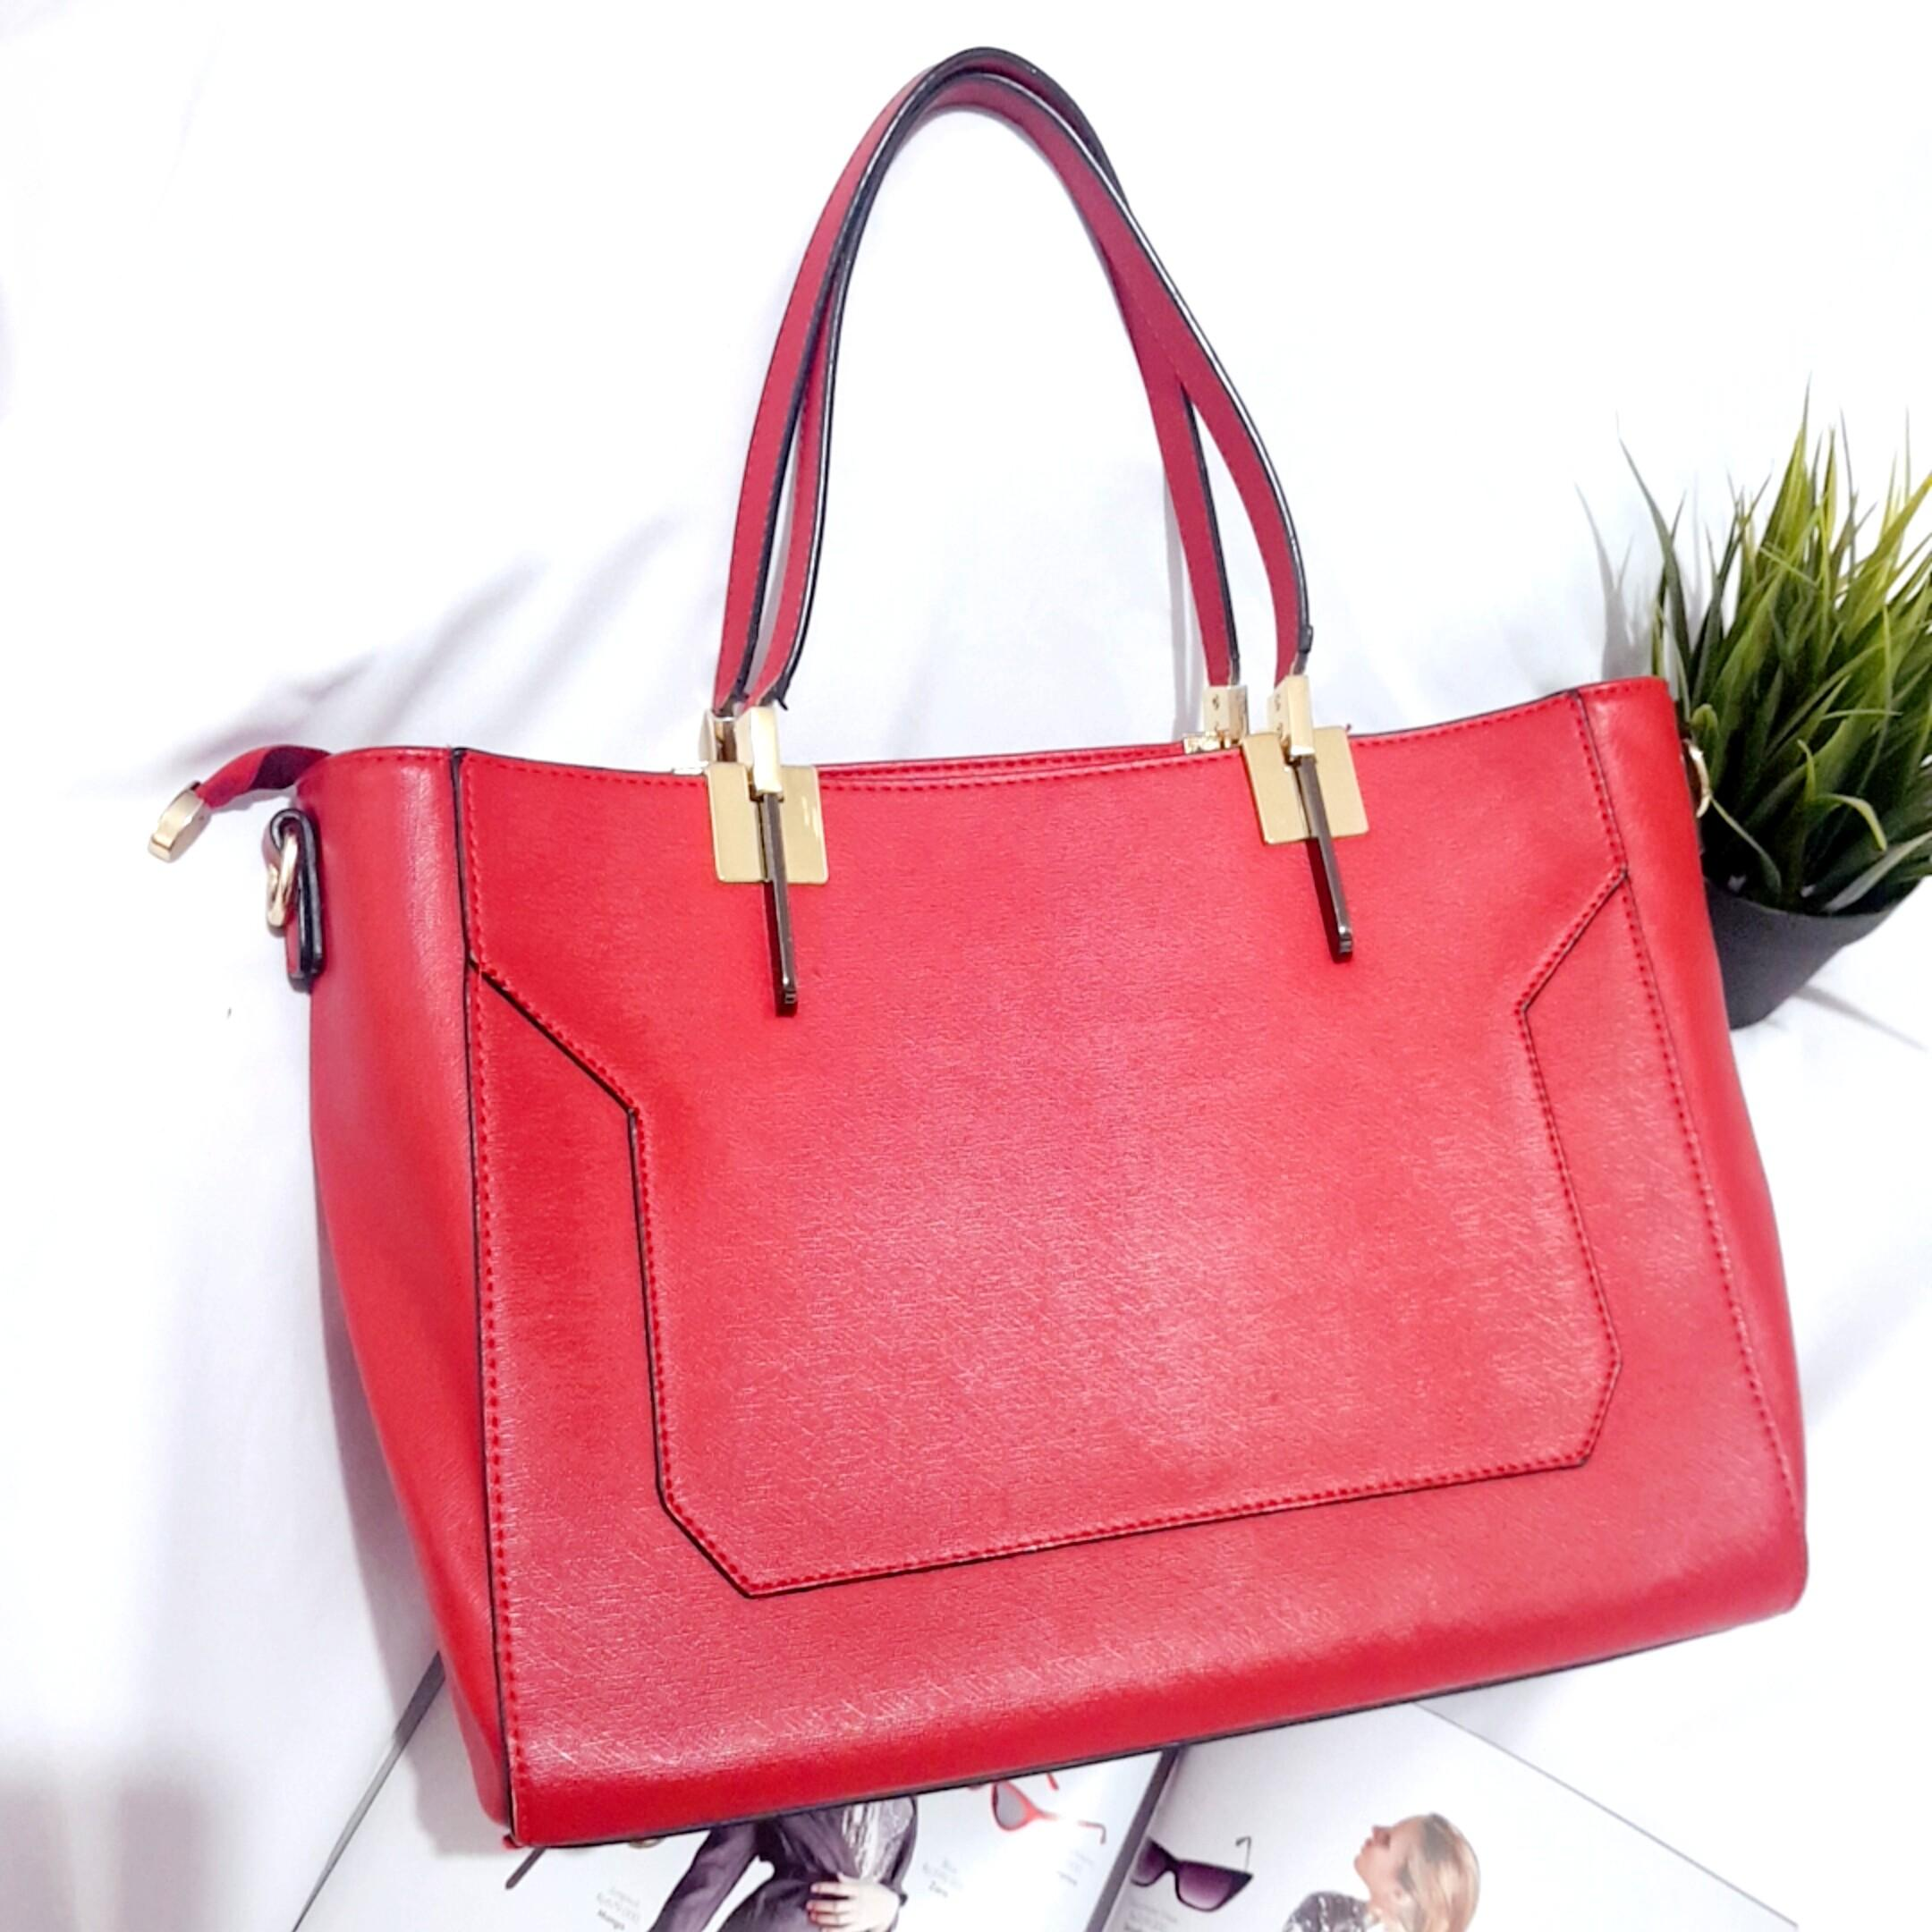 BRANDED HANA BAG ORIGINAL TOTE BAG MERAH RED SHOULDER BAG SLING BAG JUMBO BIG HAND BAG